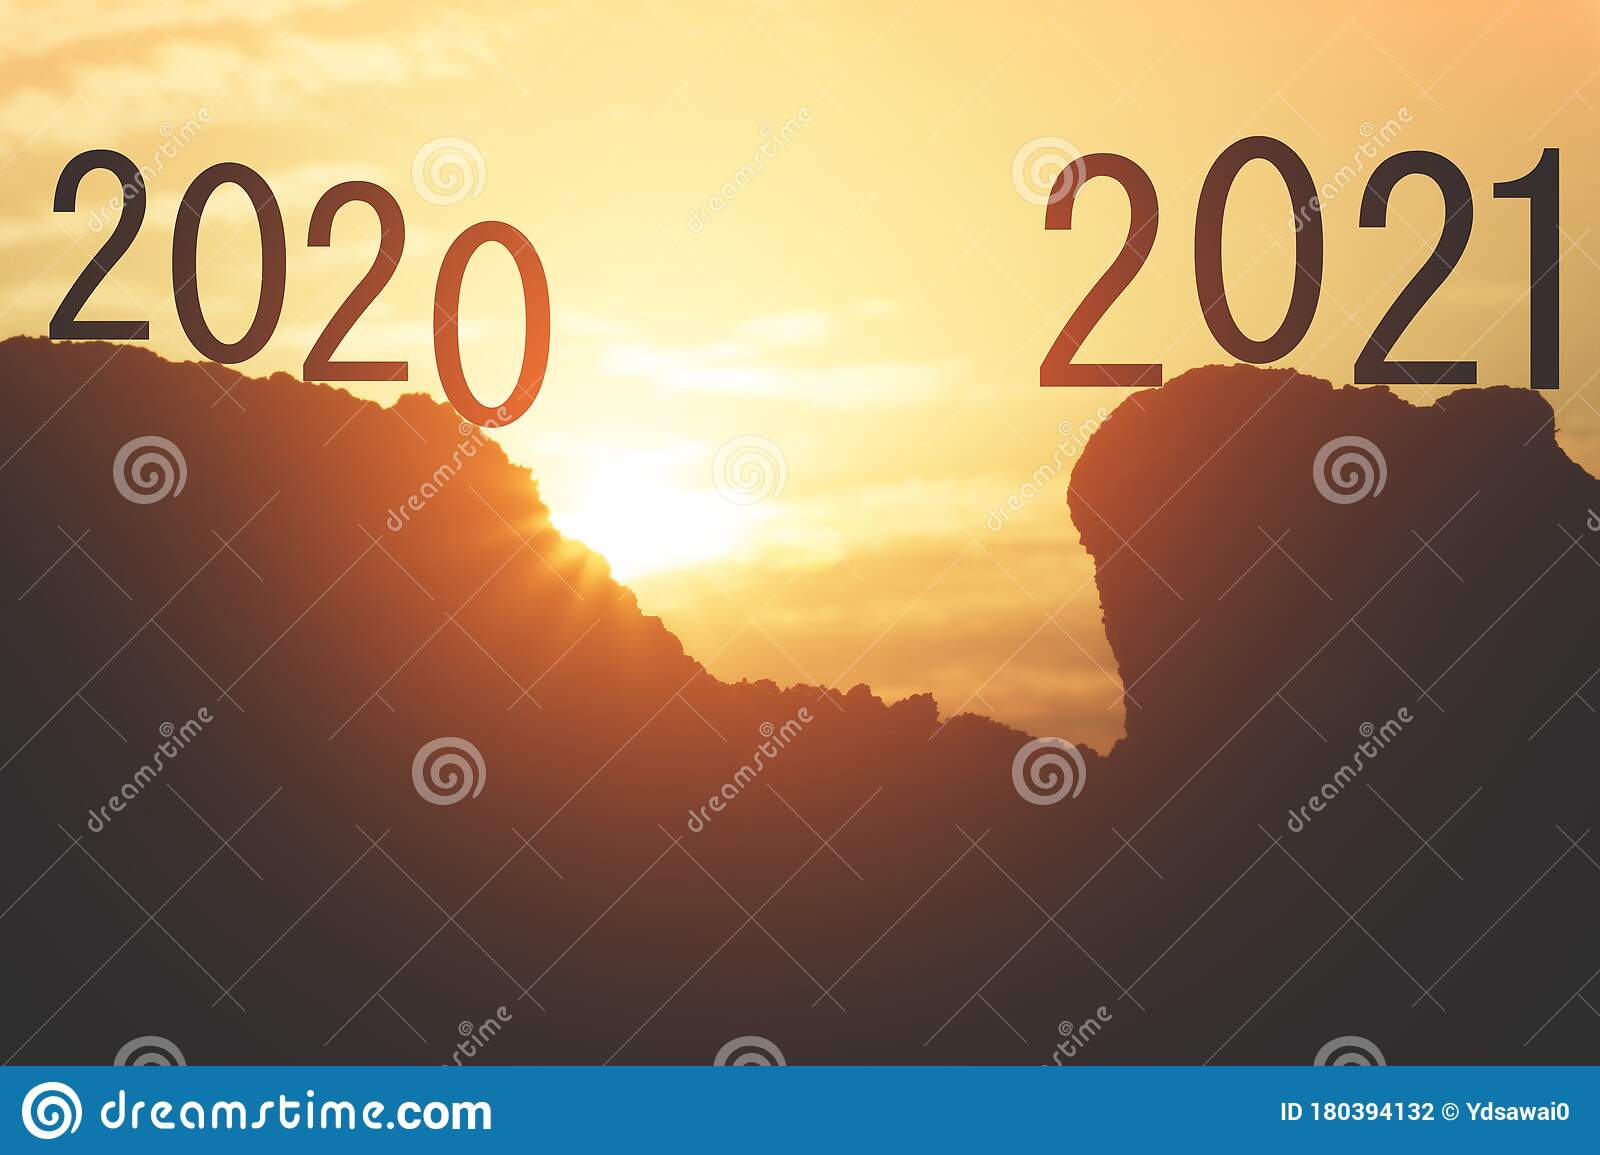 2021 Happy Merry Christmas And Happy New Year Wallpaper Lake Up In Mountain 403 Happy New Year 2021 Mountain Photos Free Royalty Free Stock Photos From Dreamstime